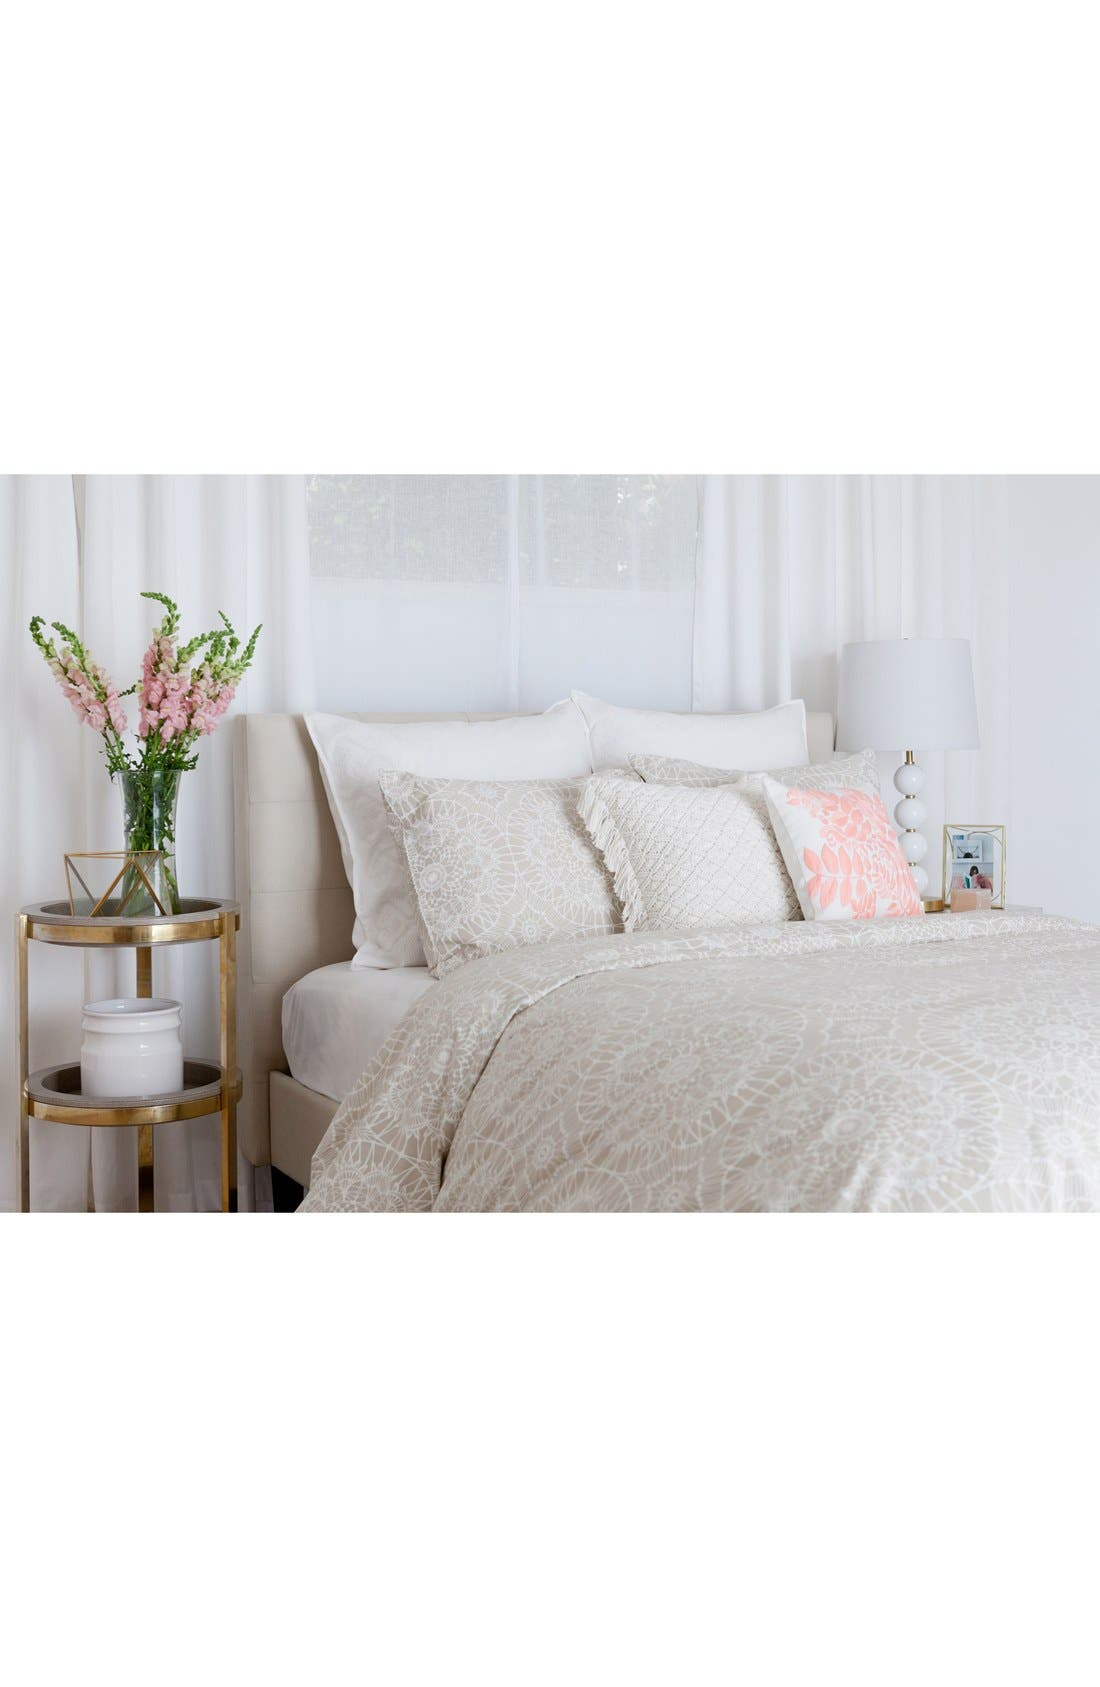 'Lace Medallion' Duvet Cover,                             Alternate thumbnail 3, color,                             250